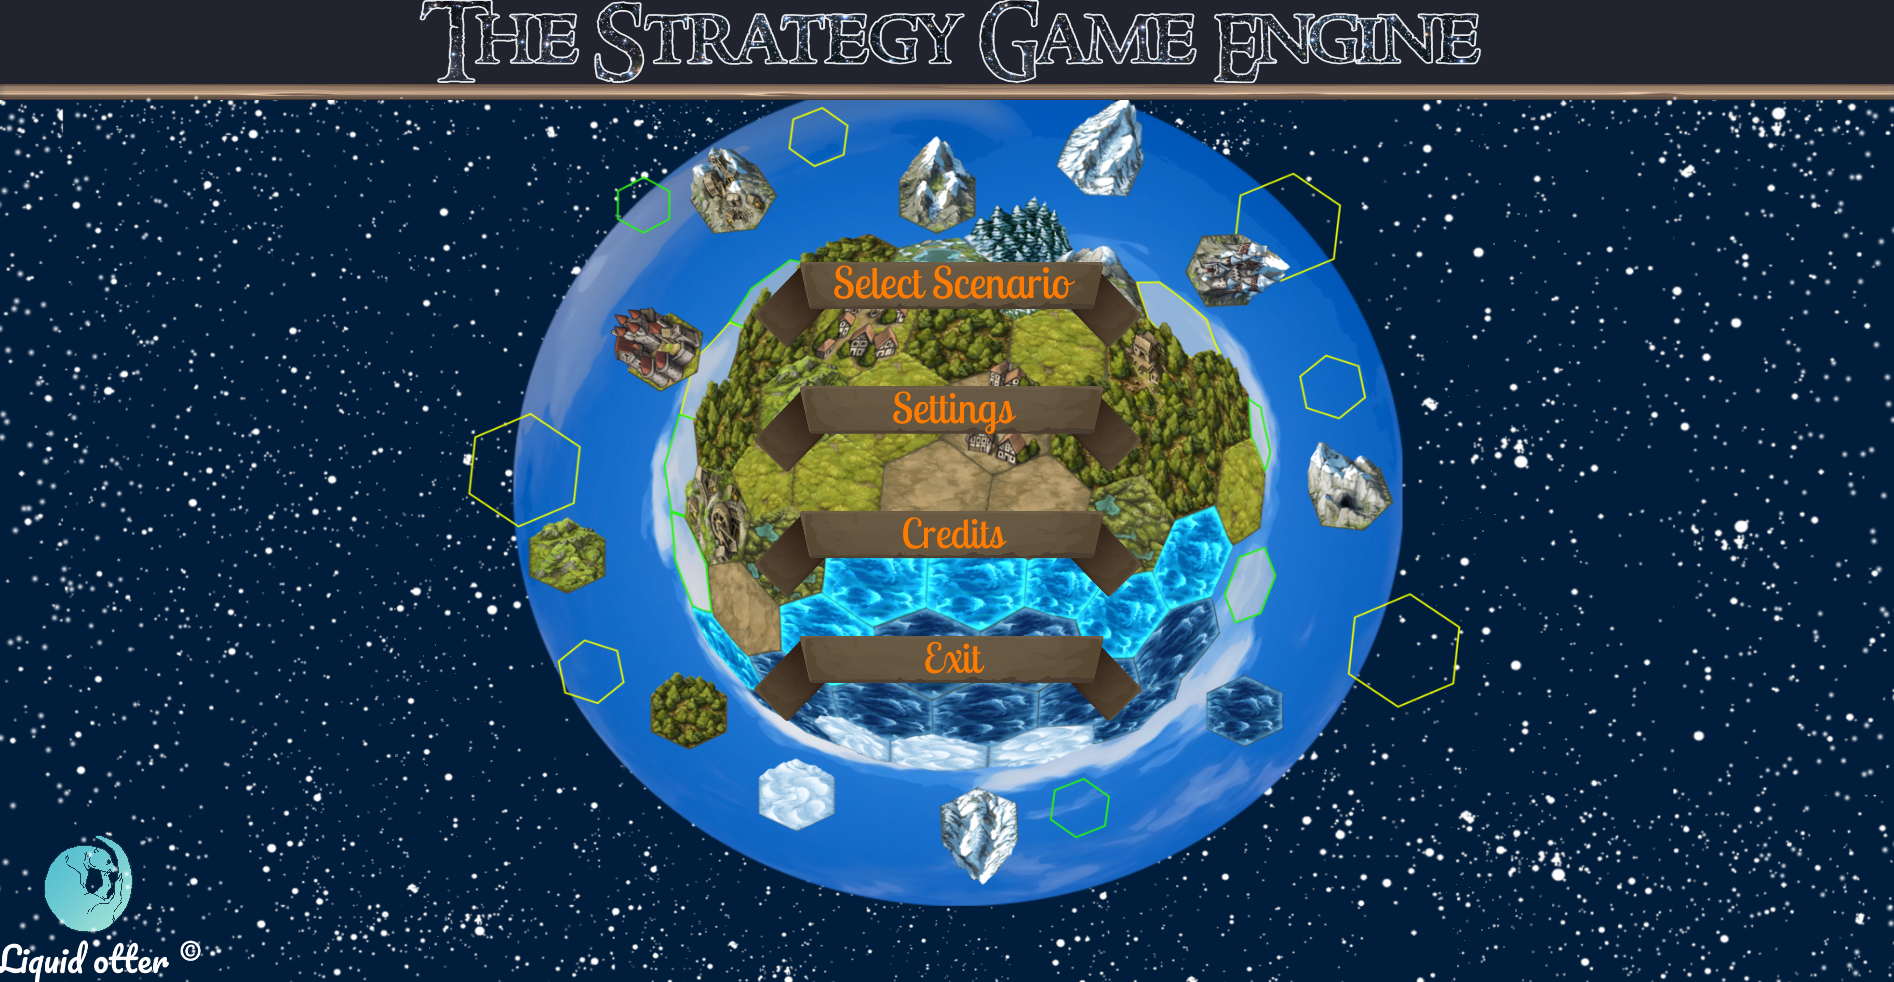 The Strategy Game Engine